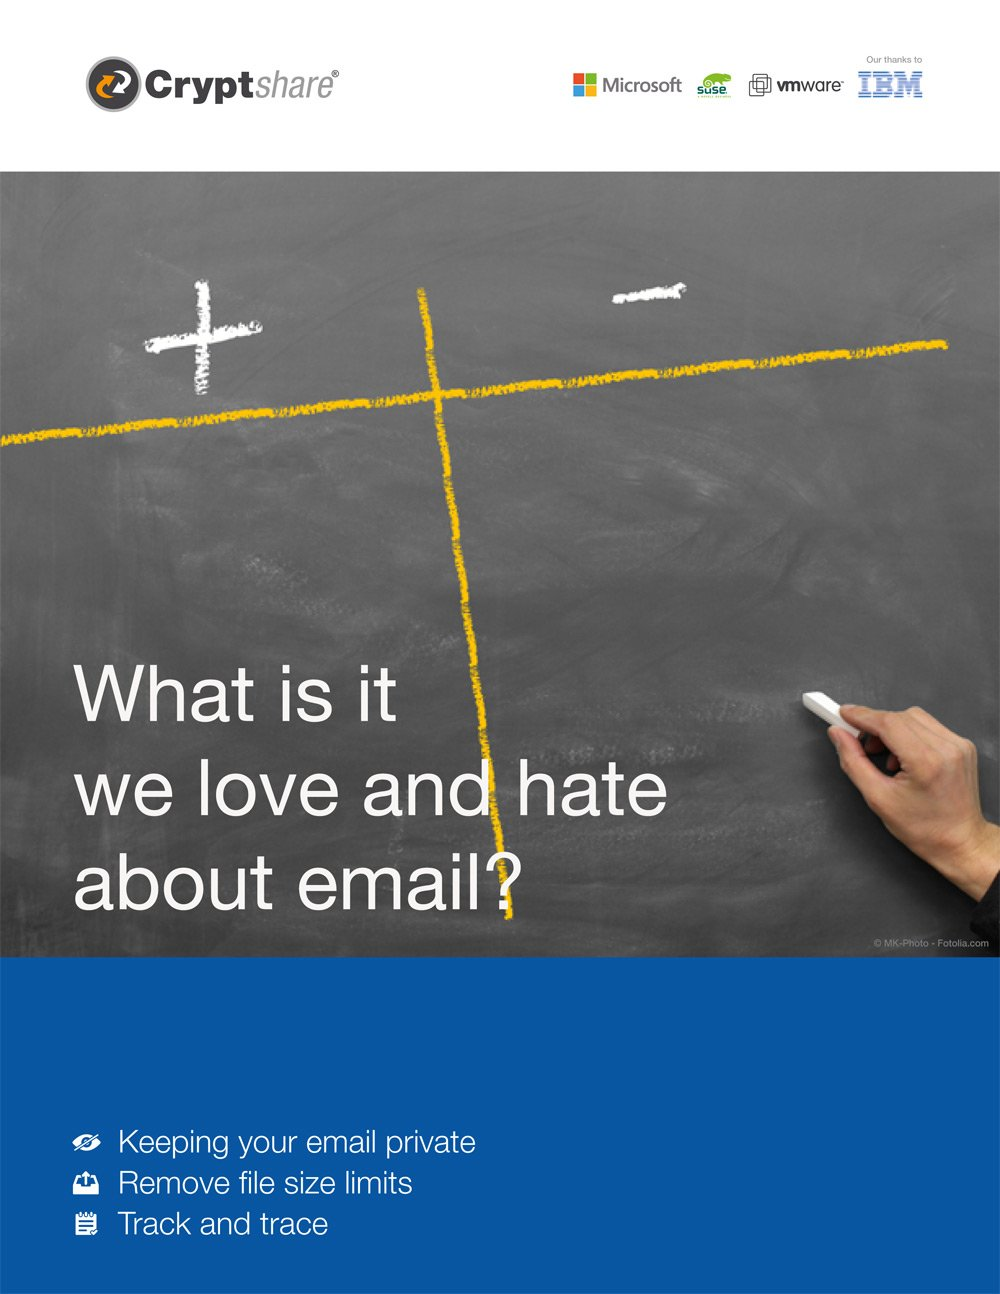 Cryptshare-What_is_it_we_love_and_hate_about_email-05282019-US-EN-web